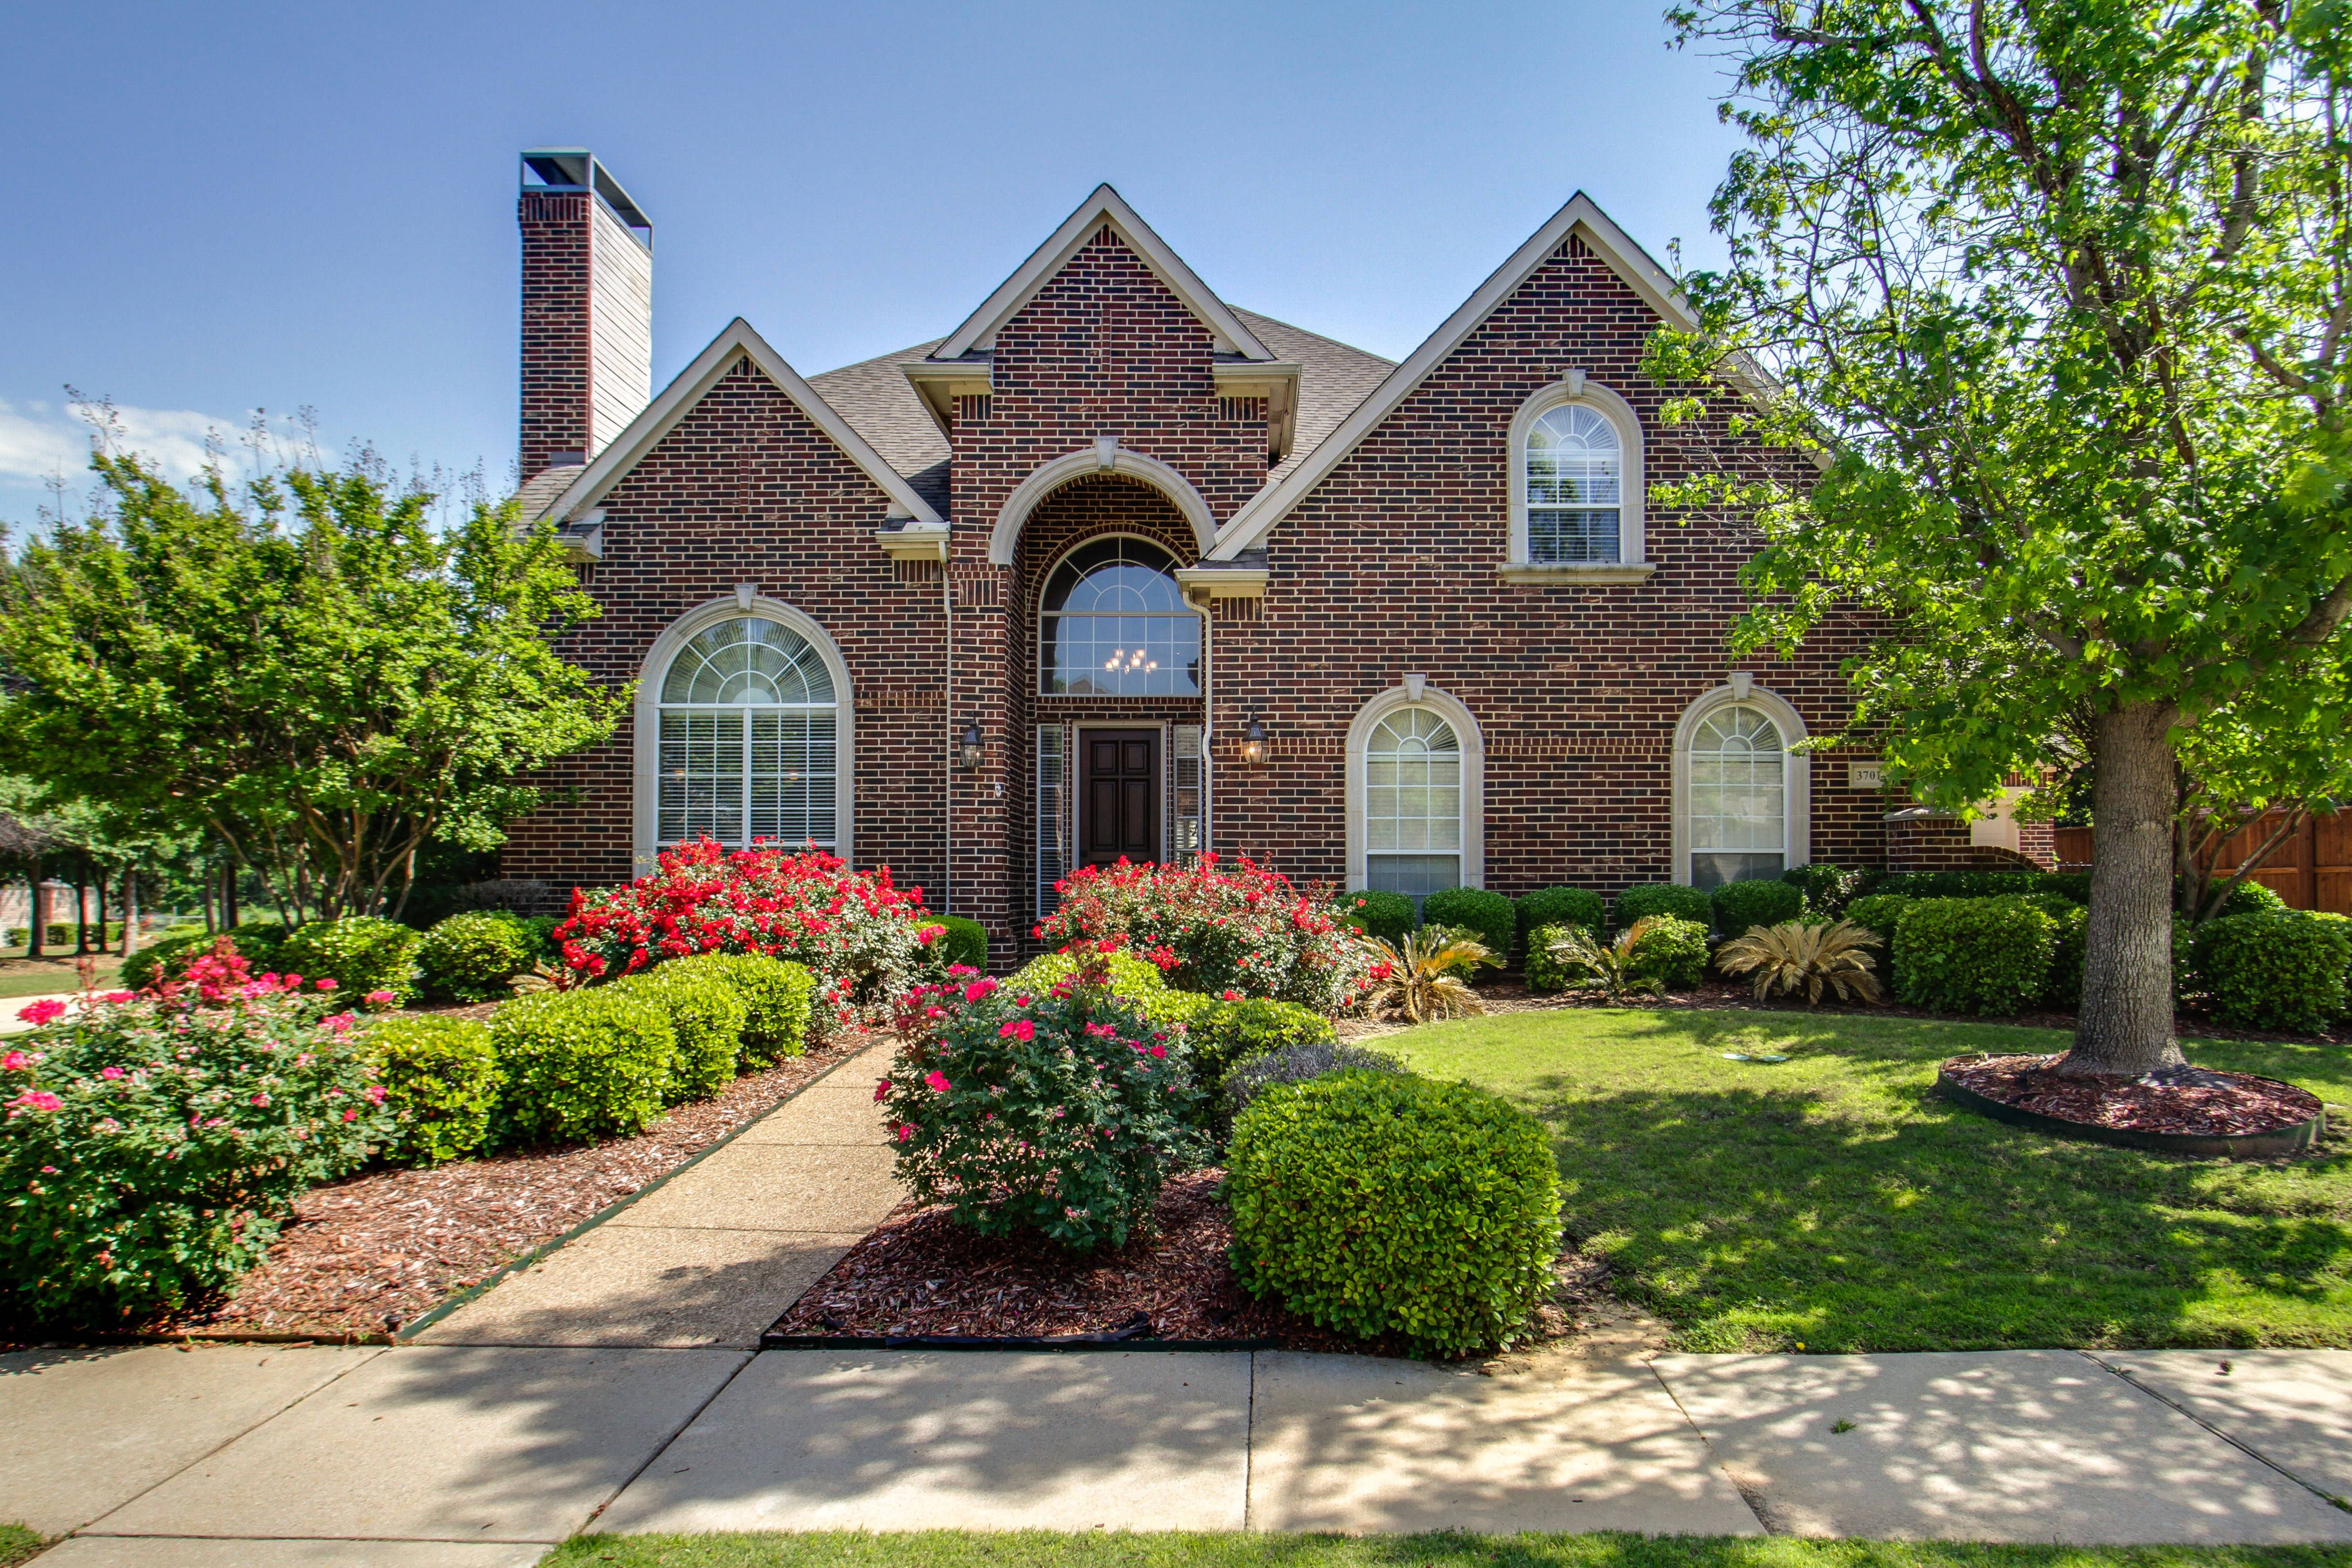 Luxurious Texas Dream Home For Sale Bridlewood, Flower